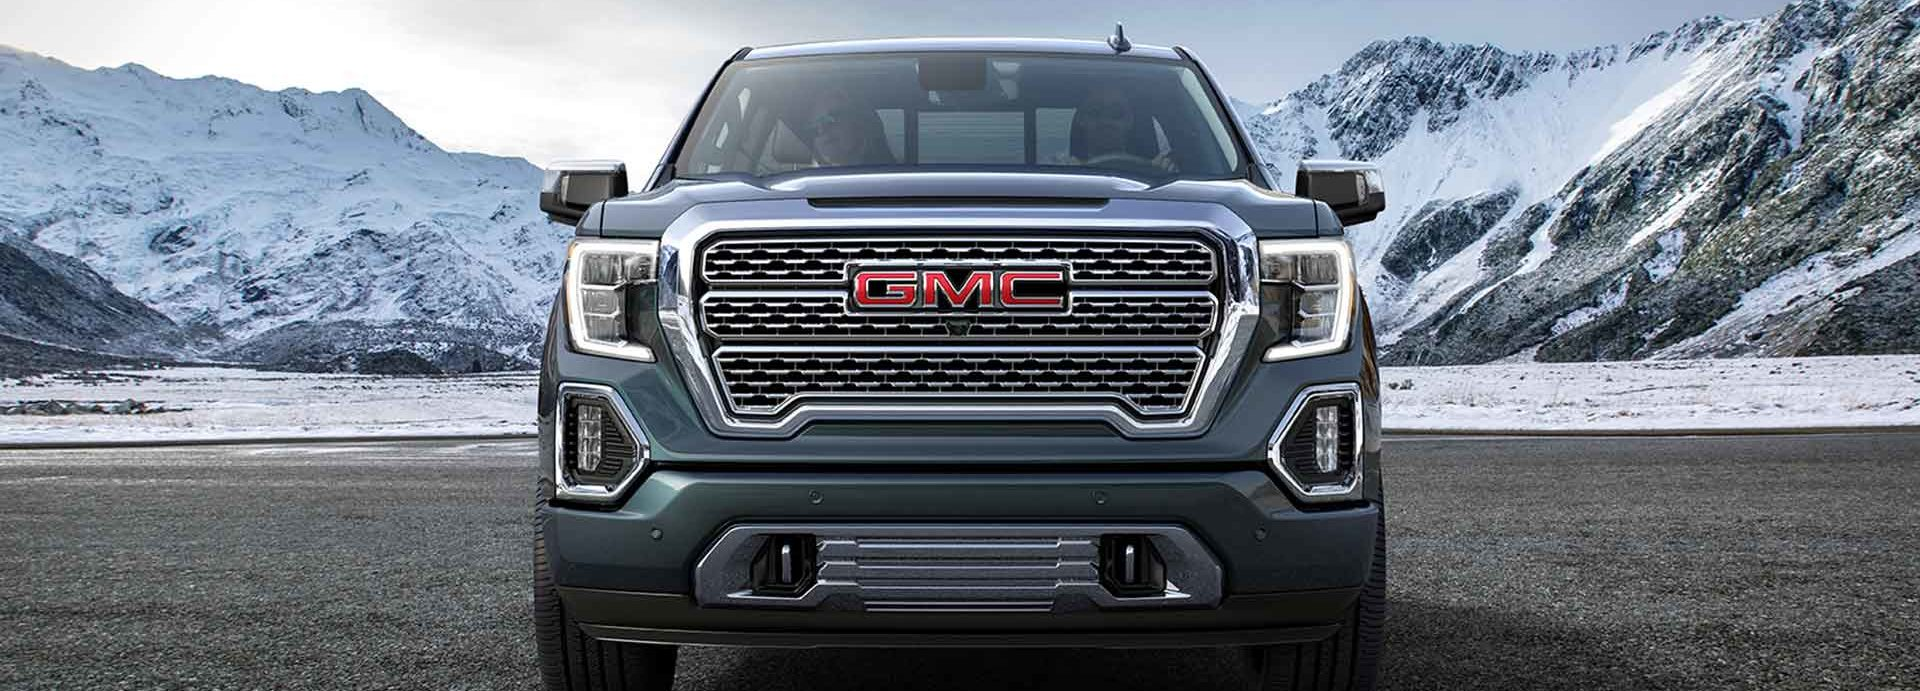 The 2019 GMC Sierra AT4 parked in the middle of an open soil field with a backdrop of mountains